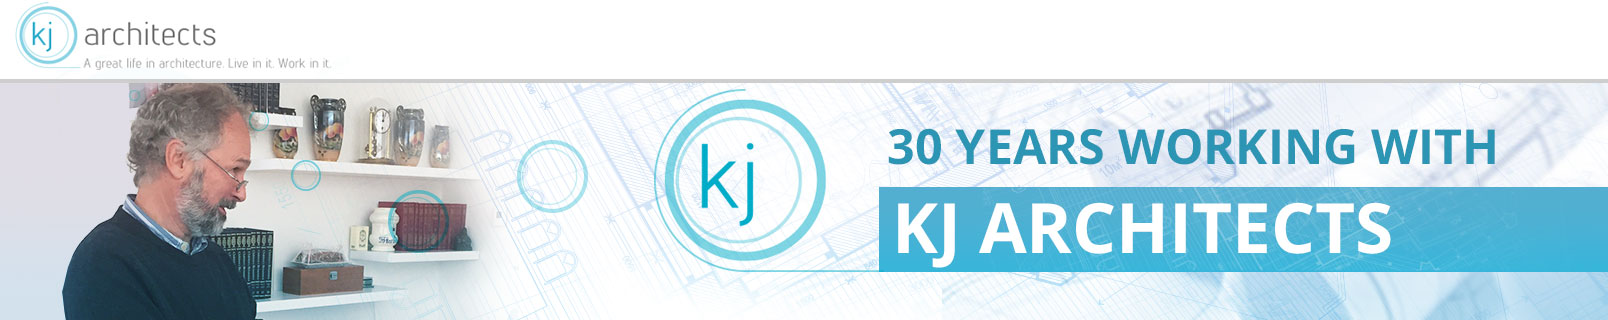 30 years working with KJ Architects